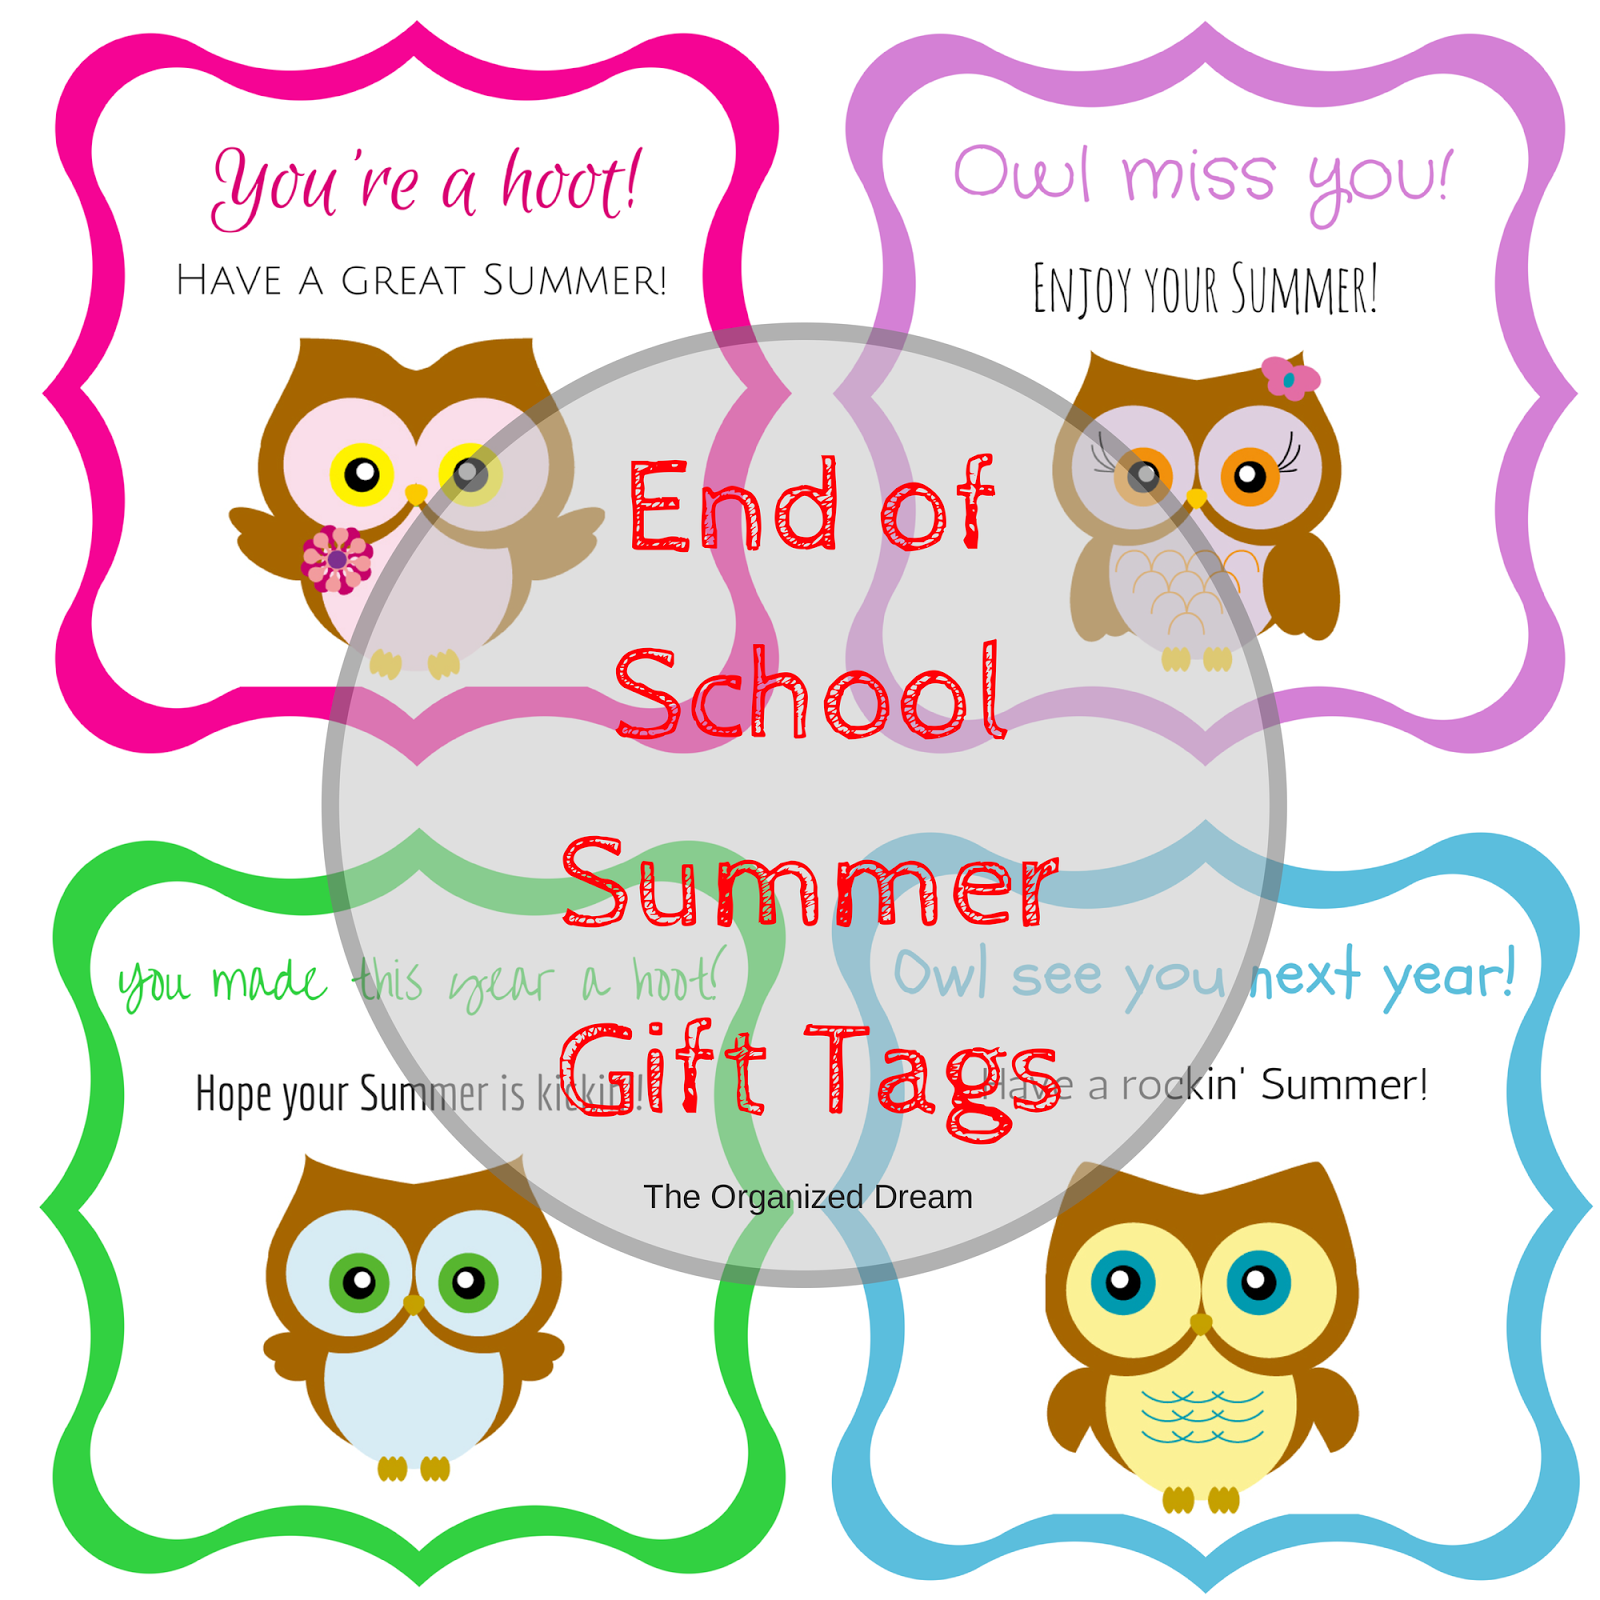 photograph about Owl Miss You Printable titled Free of charge Owl Conclusion of Faculty Reward Tag Printables - The Well prepared Desire